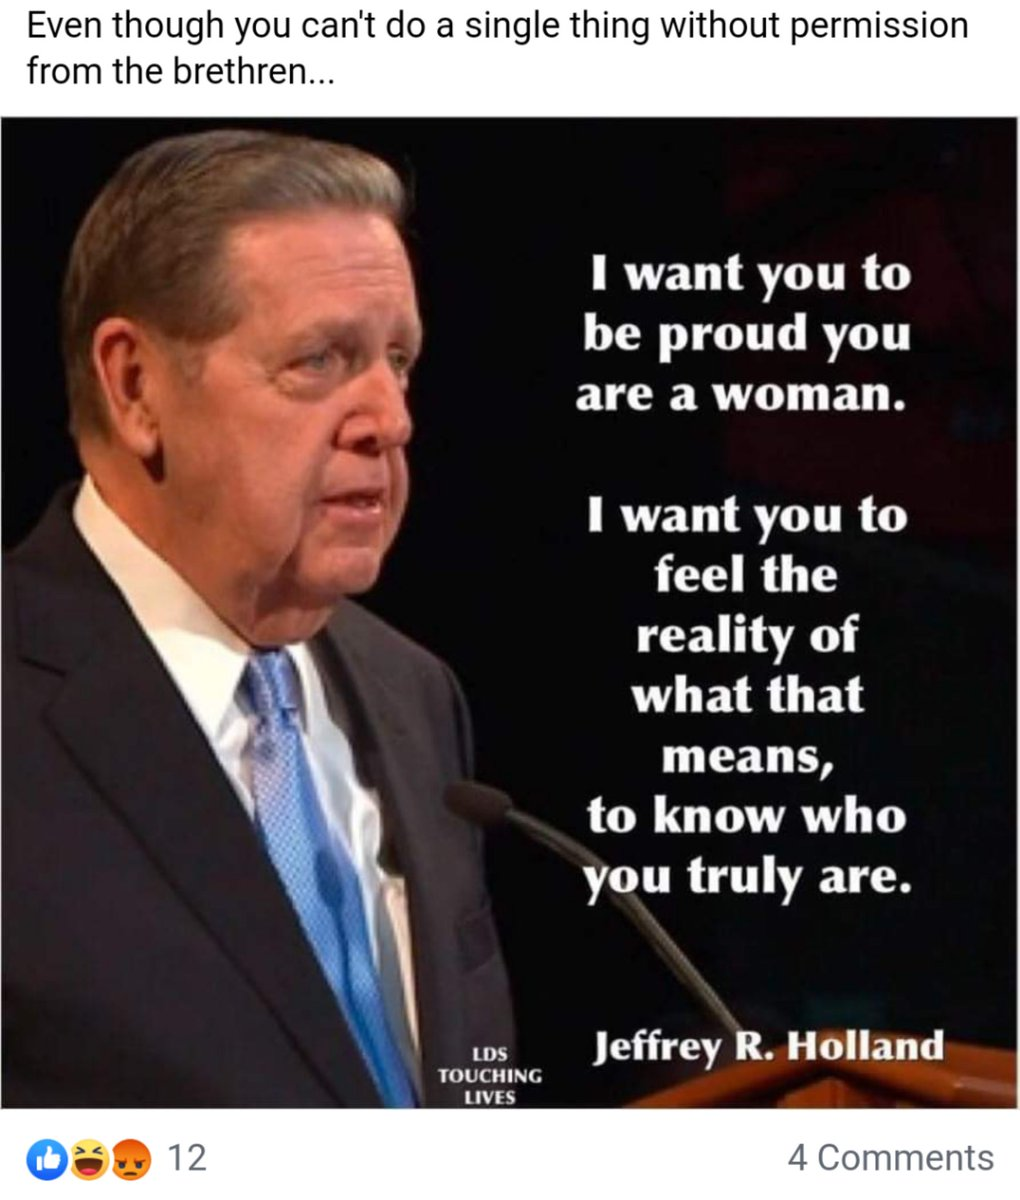 @HollandJeffreyR it's called manipulation. You aren't honest with people, not when you won't have equality for women members too. @Ch_JesusChrist @LDSchurch #church #equality #EqualityForAll #EqualRights #utah #Feminism #women #lds #mormon https://t.co/3CEYSFe5Qb